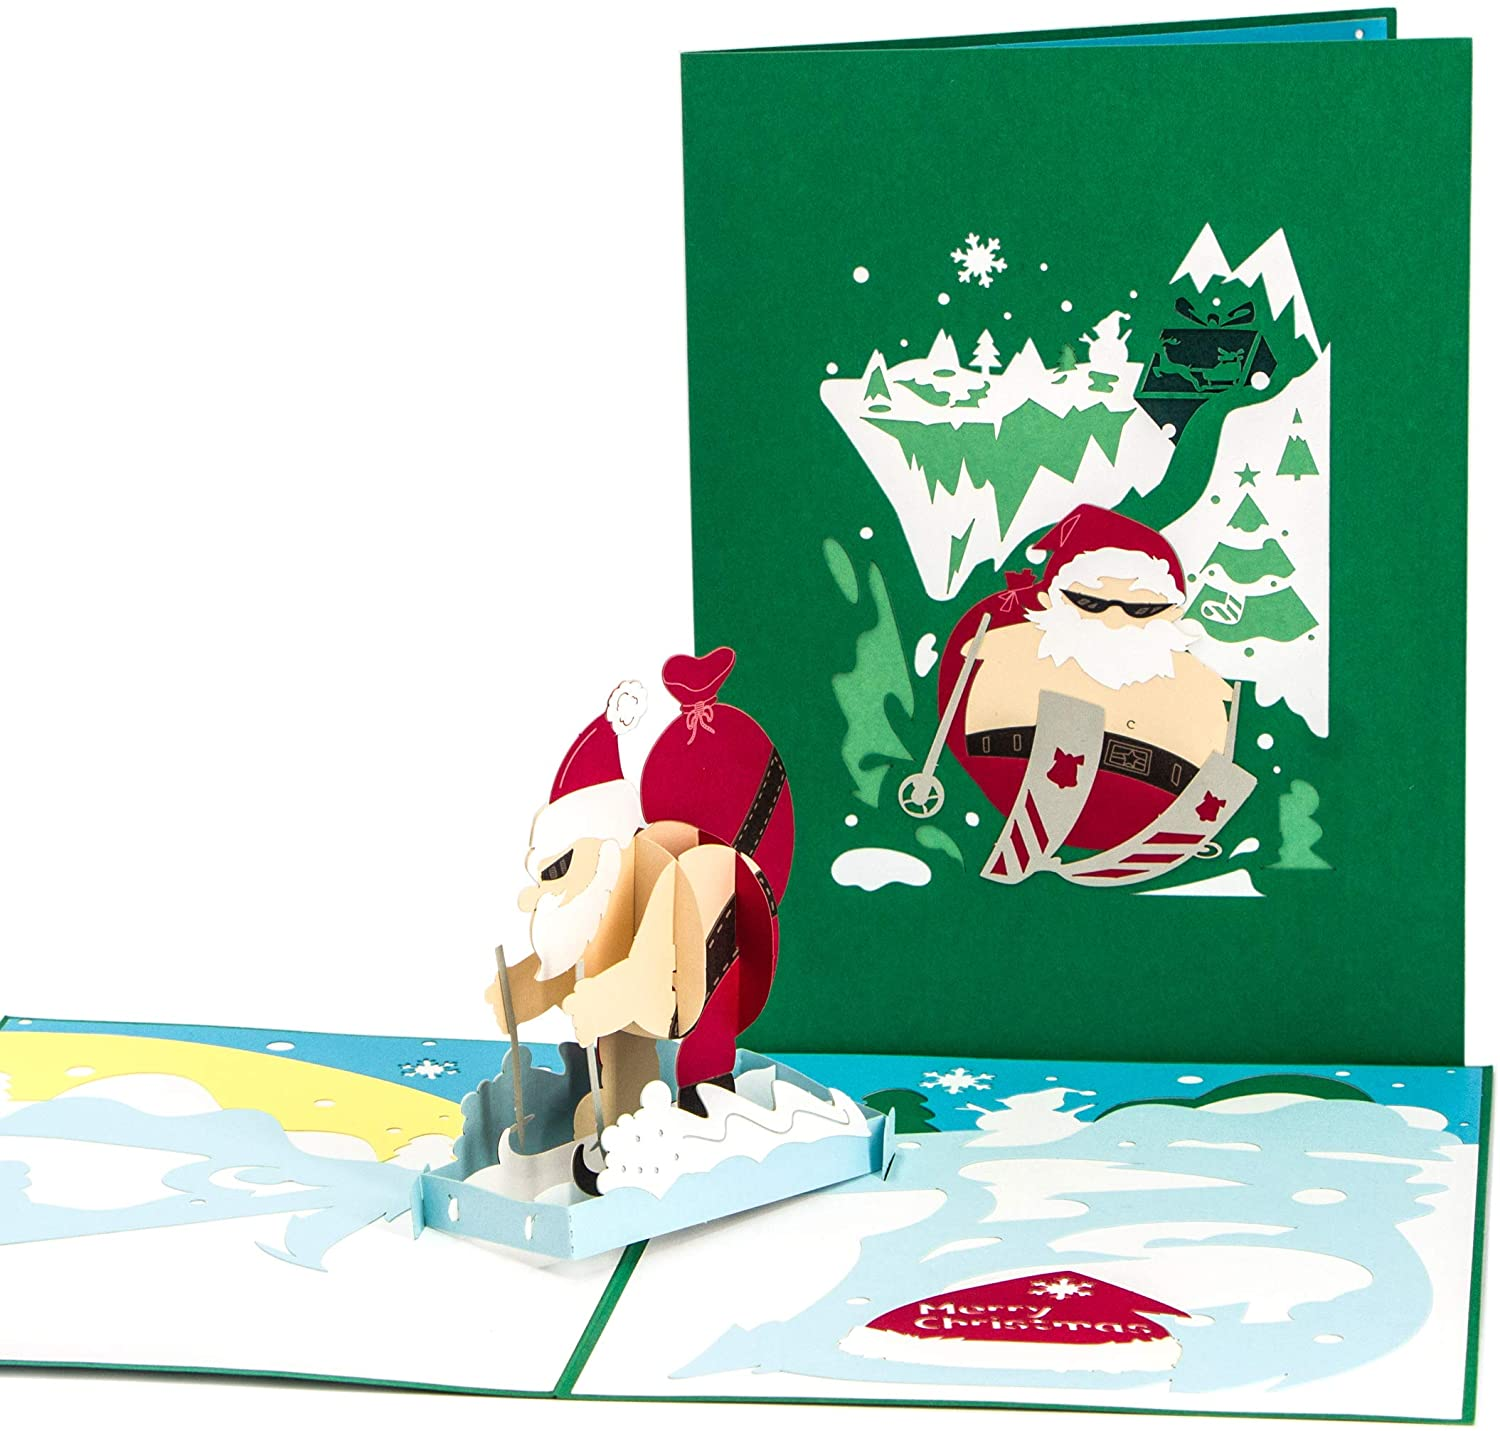 Ribbli Christmas Skiing Handmade 3D Pop Up Card,Greeting Card,Christmas Card,Funny Card,Santa Card,Skiing Card,with Envelope